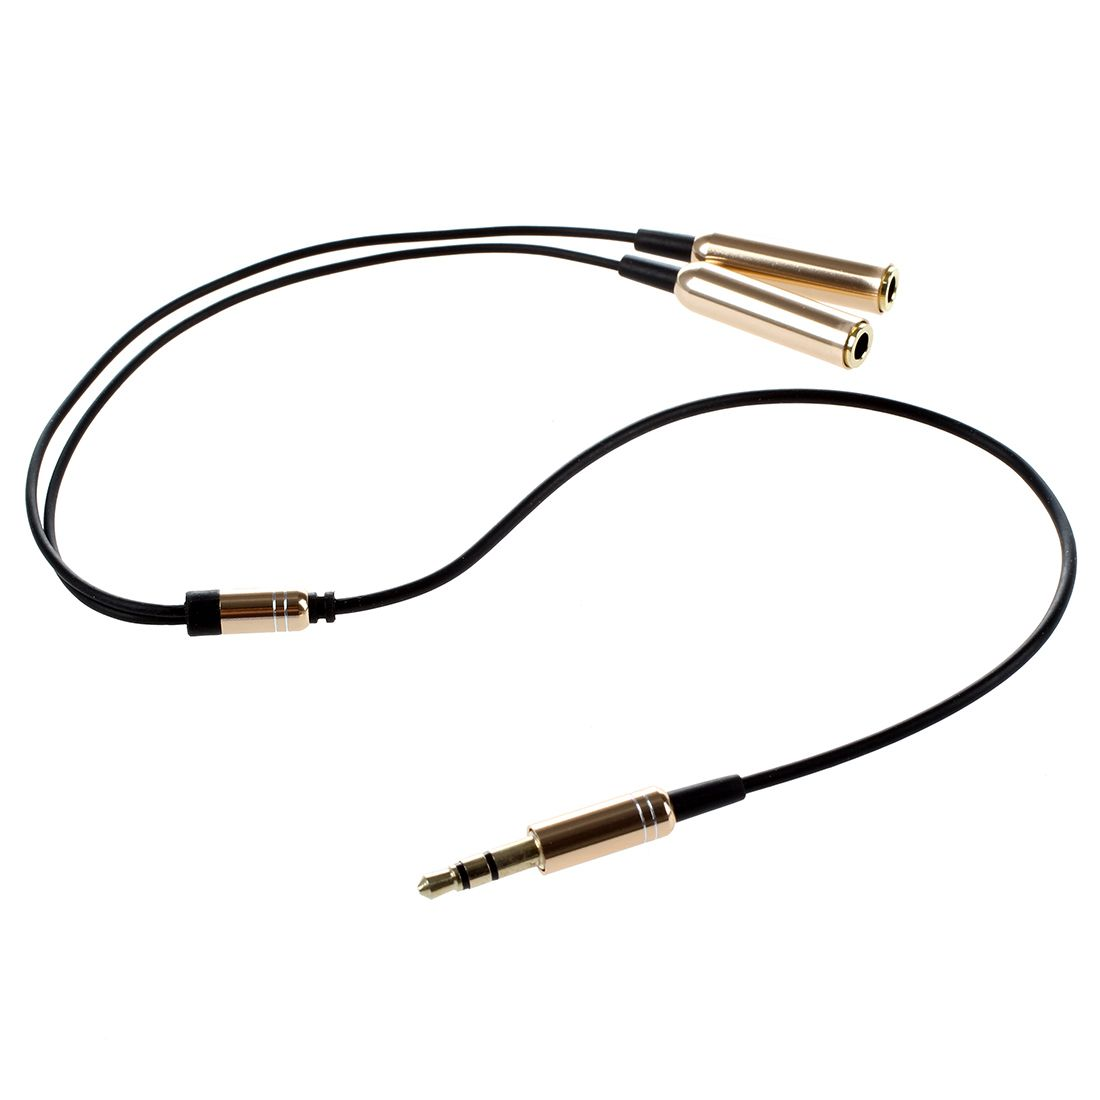 3 5 Mm Dual Connector Male Female Jack Adapter Cable Audio